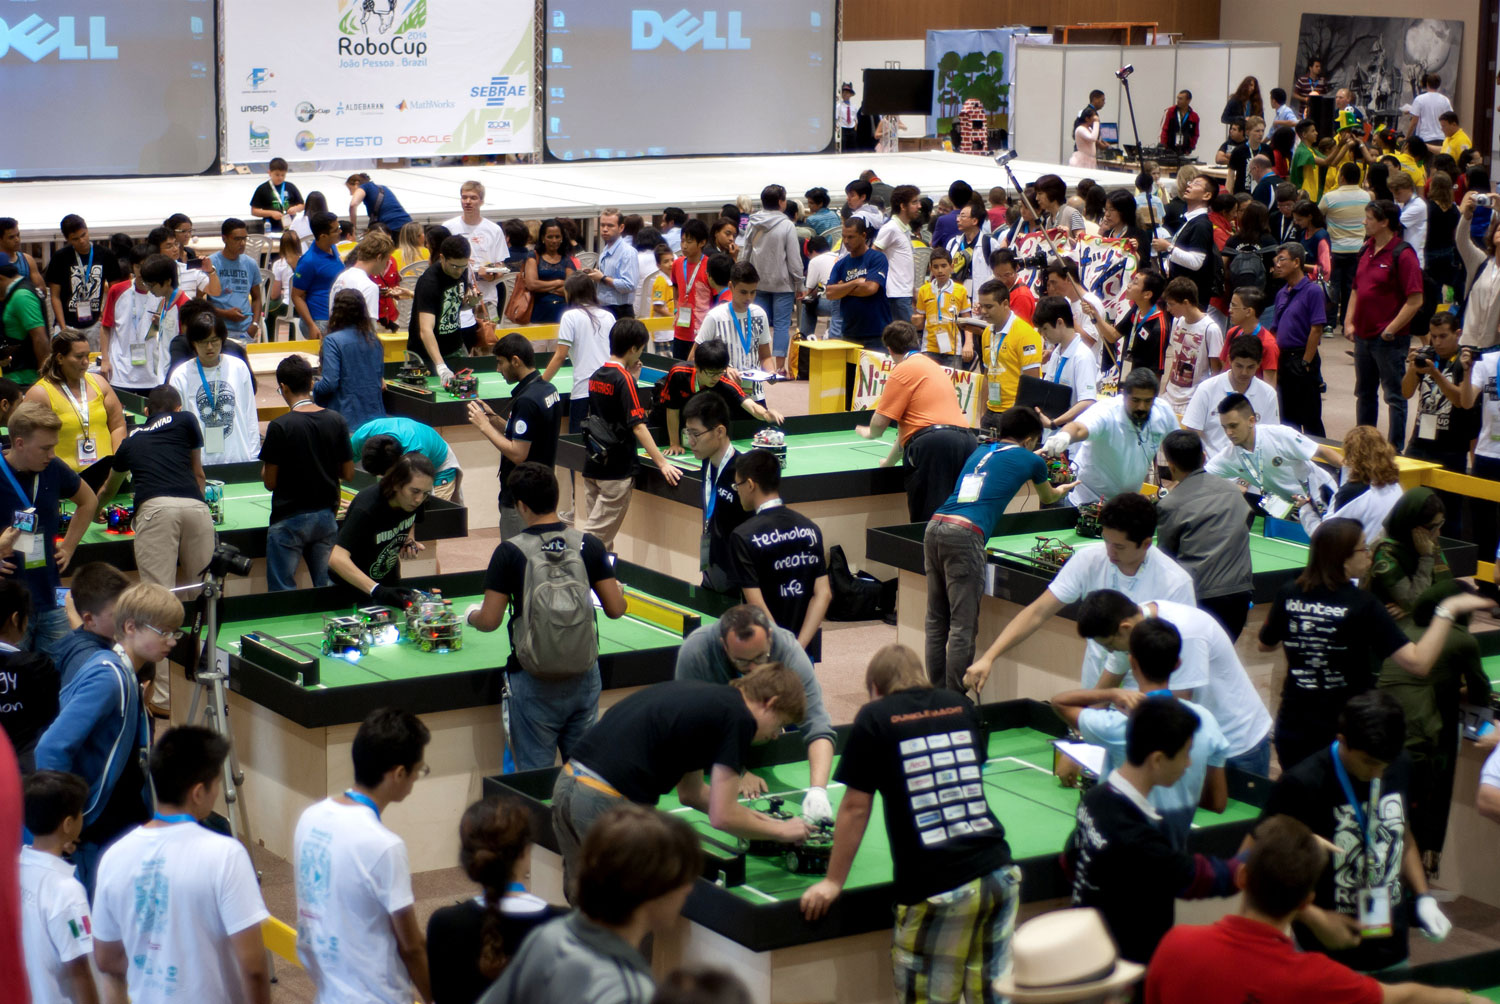 Robocup Junior teams in RoboCup Robot Soccer Championship on July 21, 2014.